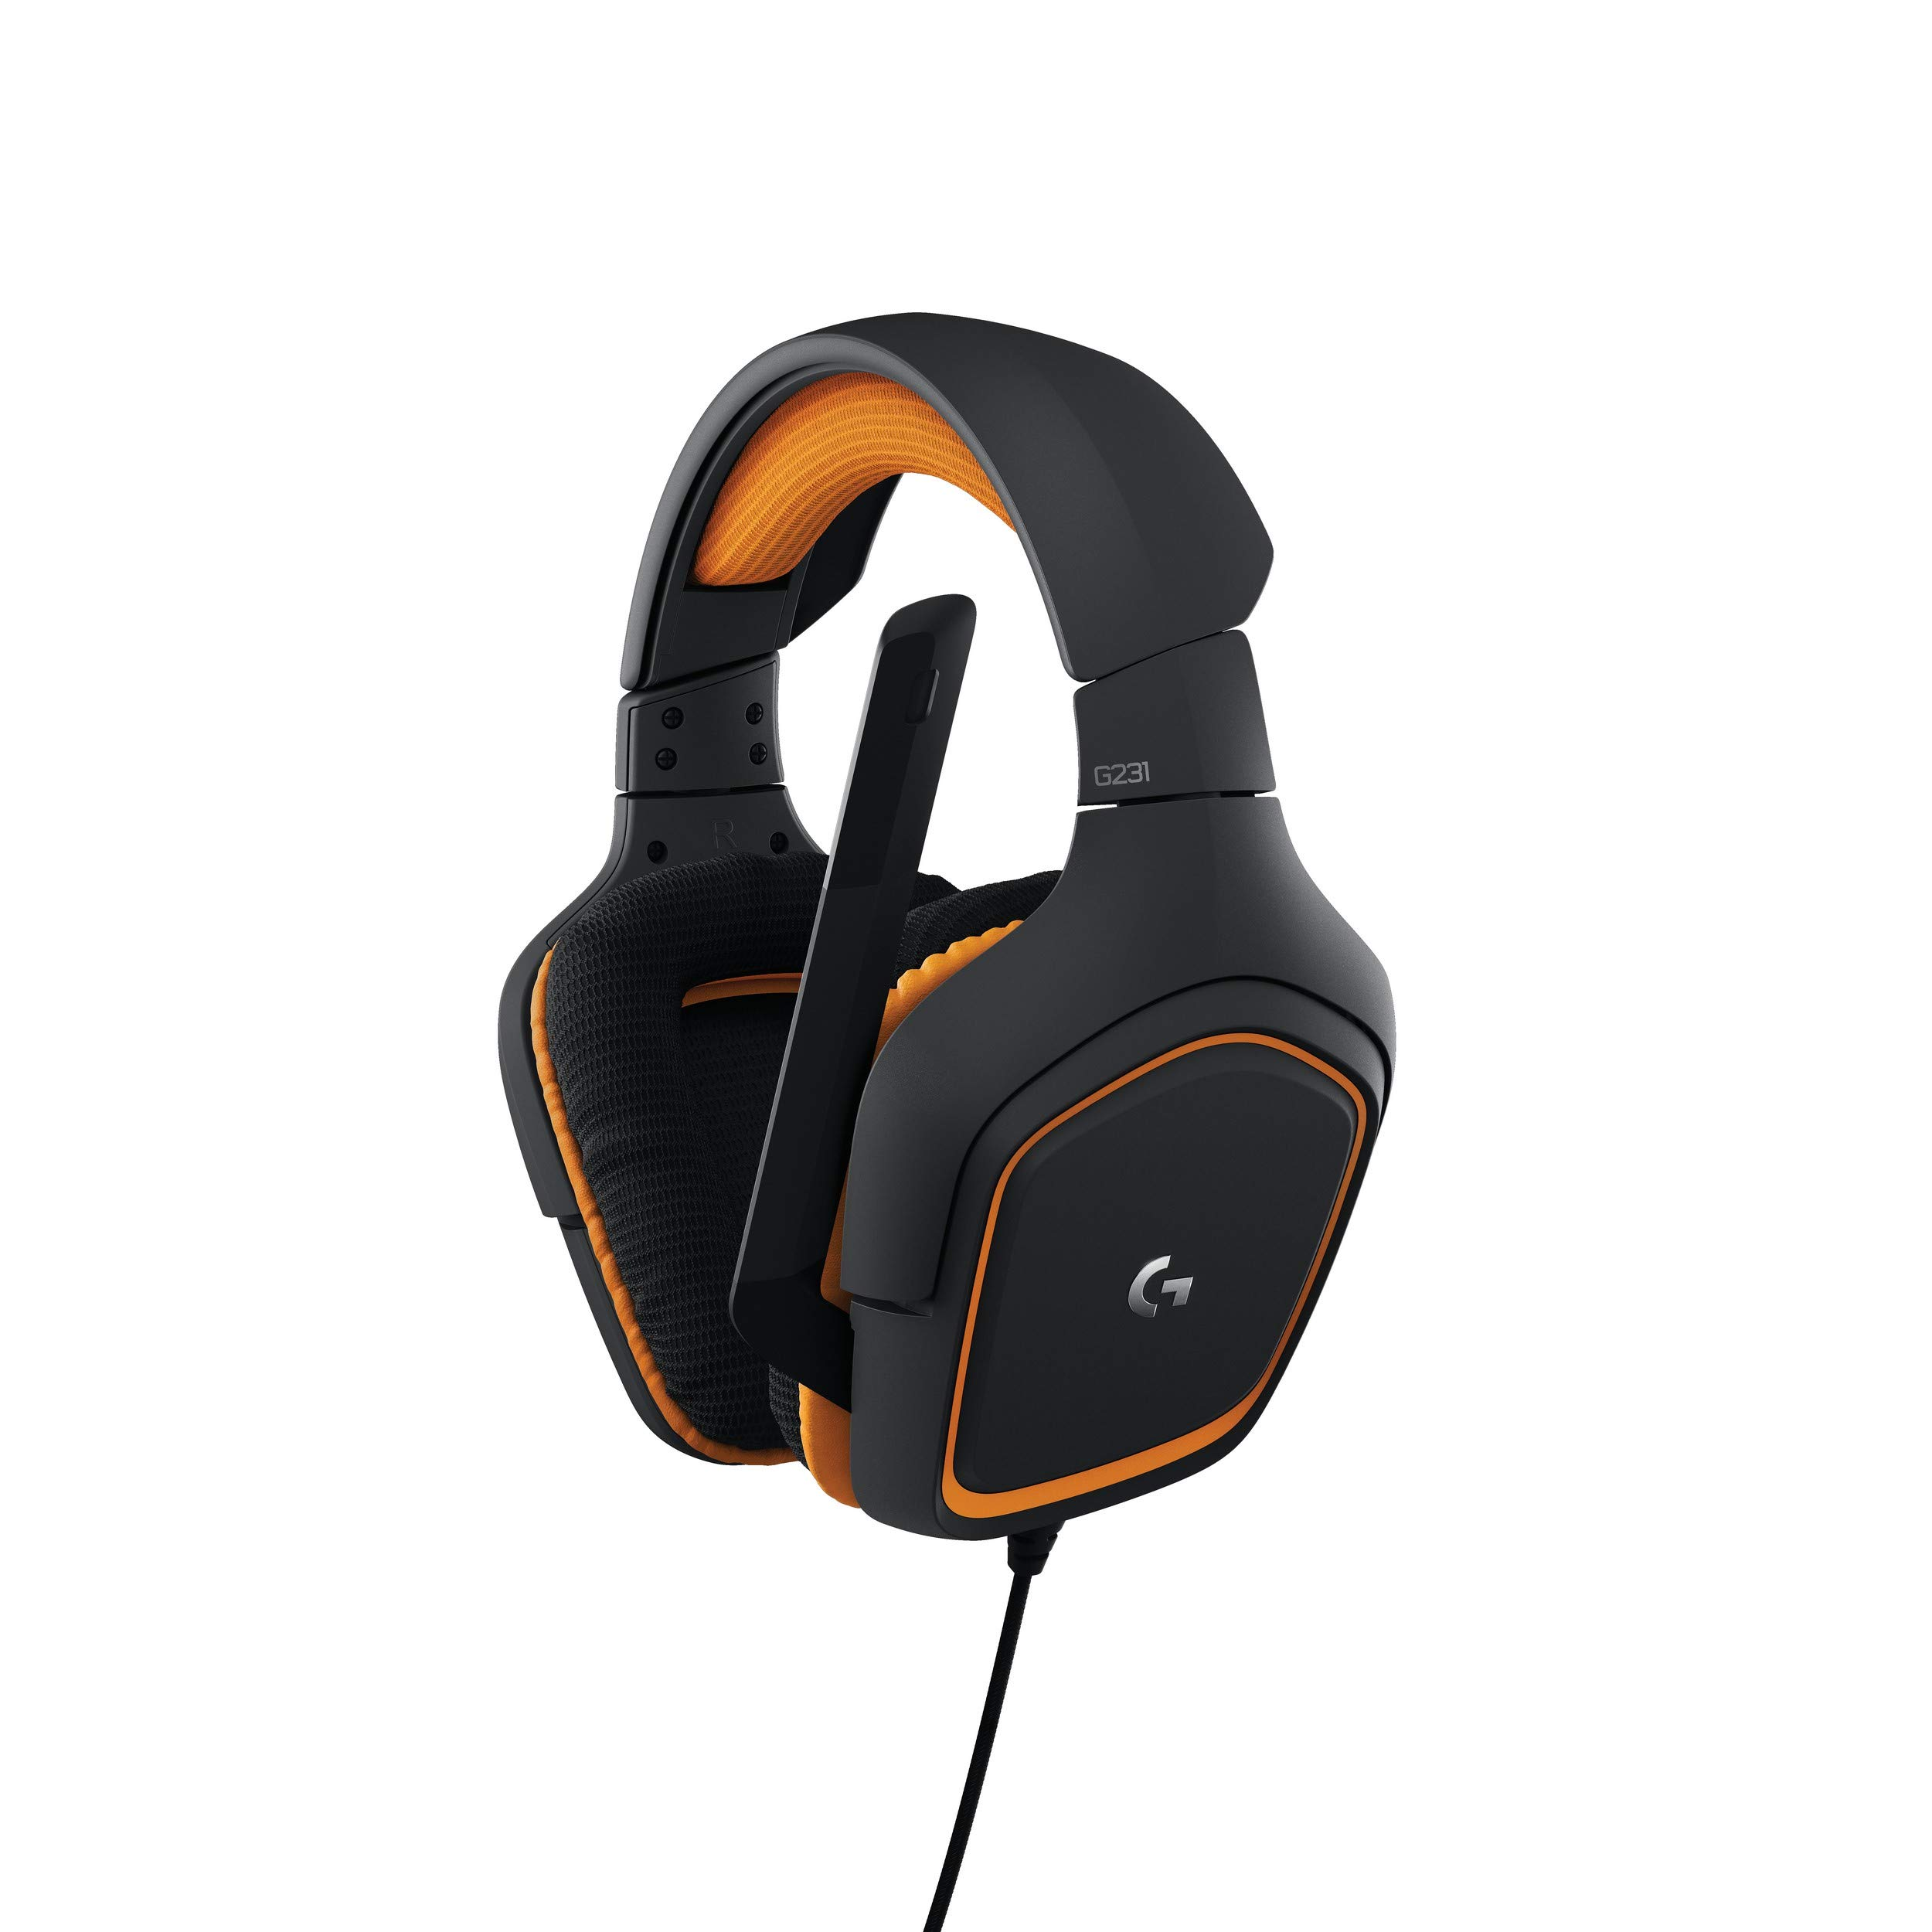 로지텍 G231 프로디지 게이밍 헤드셋 Logitech G231 Prodigy Gaming Headset – Game-Quality Stereo Sound – Playstion 4, Xbox One, Nintendo Switch Gaming System Compatible – Folding, Unidirectional Mic – Lay-Flat Earpiece